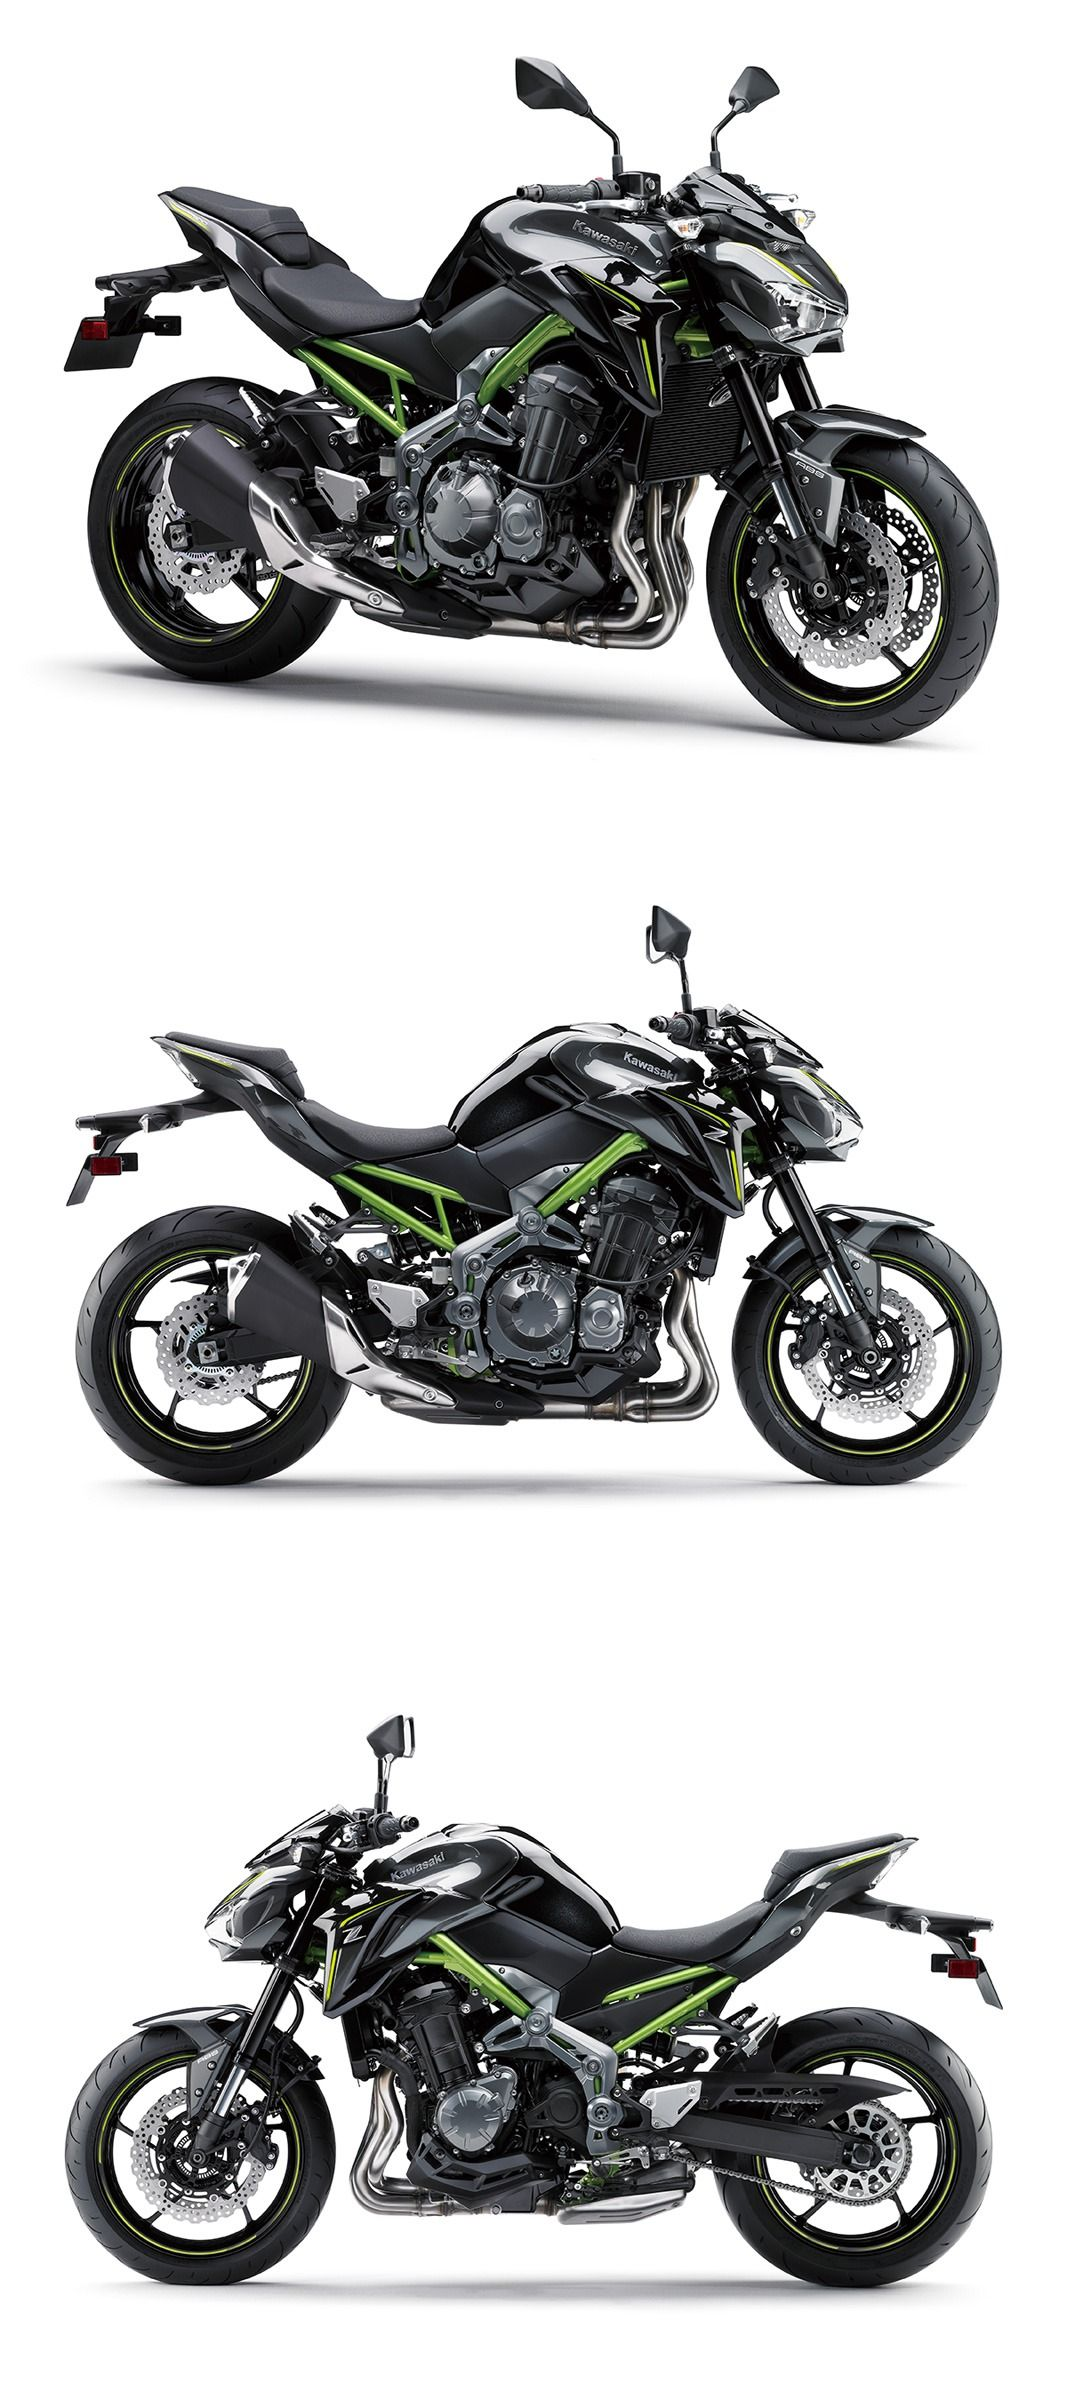 Kawasaki Z900 To Be Launched In India Soon Price